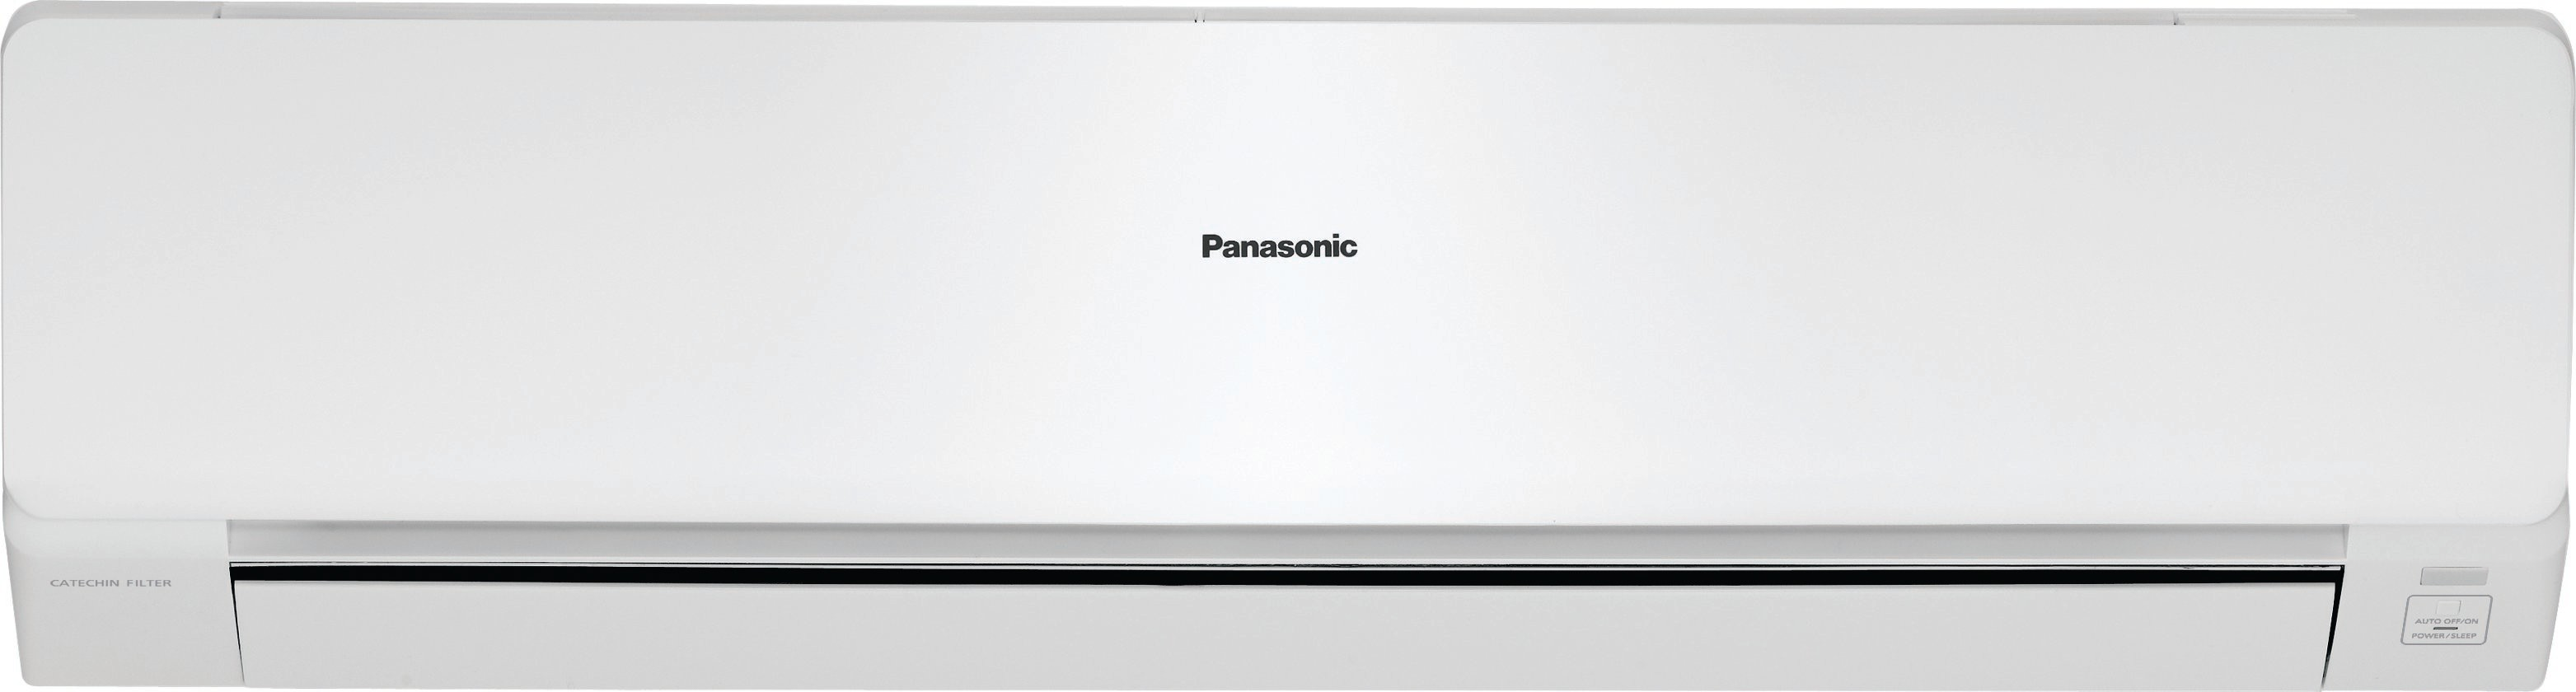 Ton 3 Star Split AC White Panasonic branded Air Conditioner Price  #1A1C1D